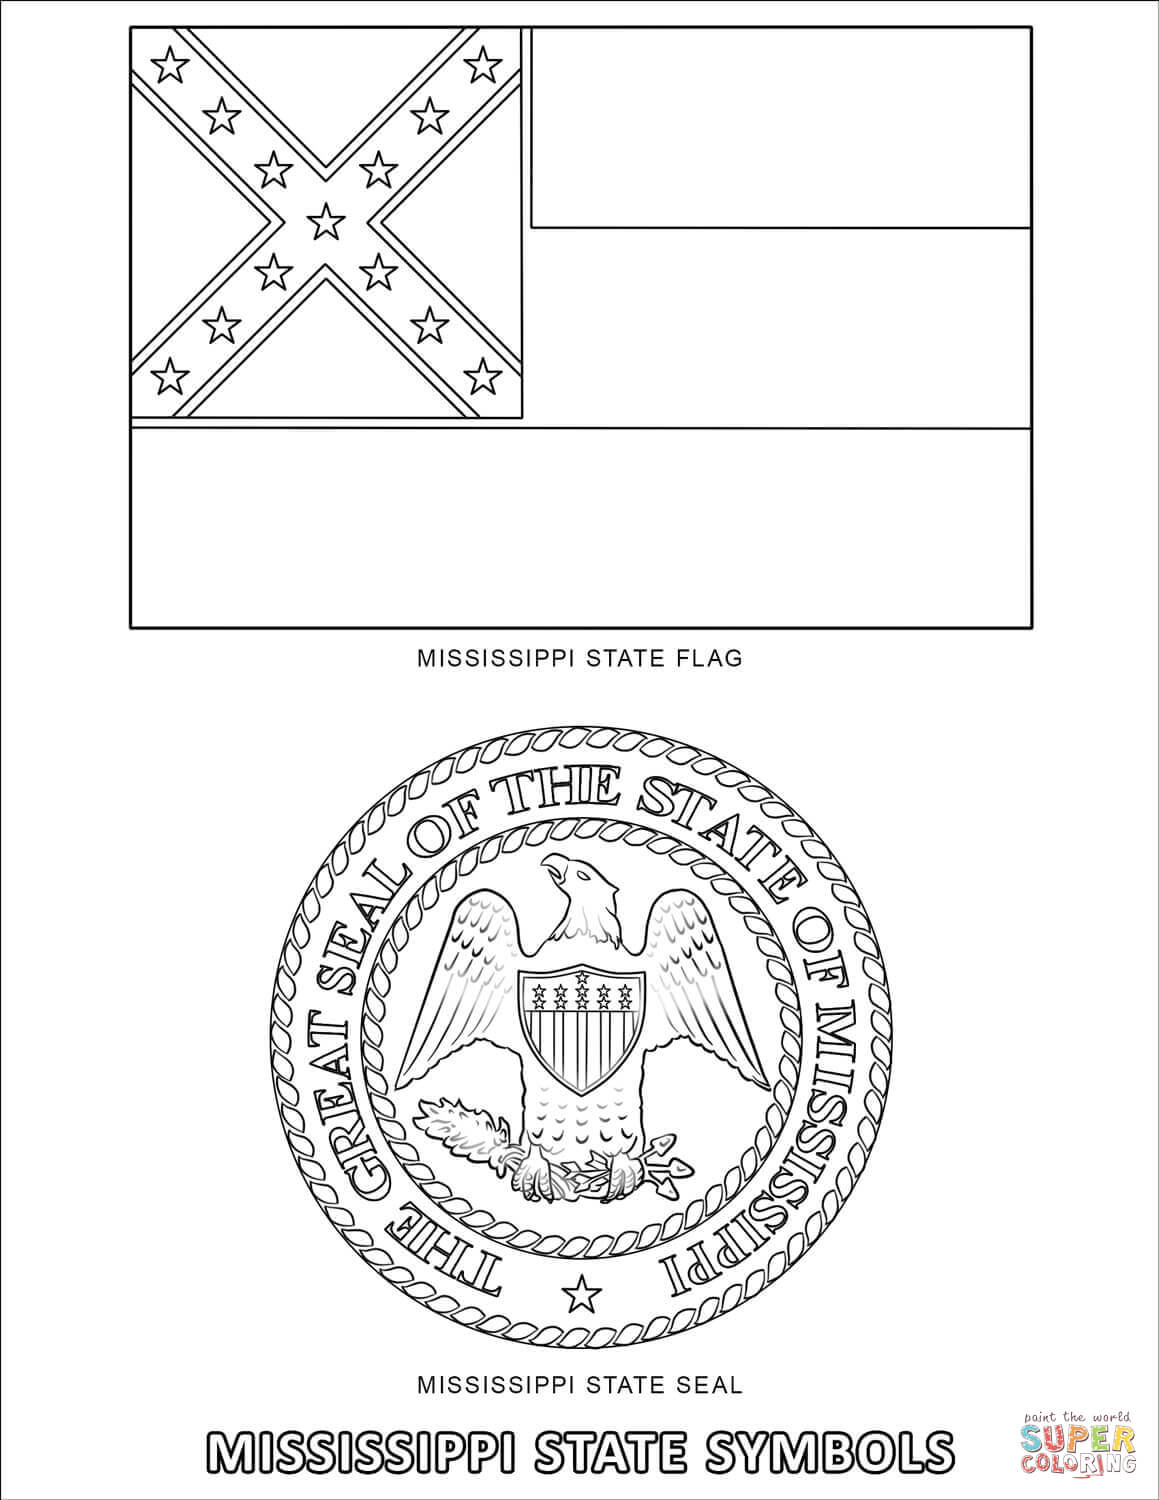 mississippi state flower states flower coloring pictures hawaii louisiana state mississippi flower